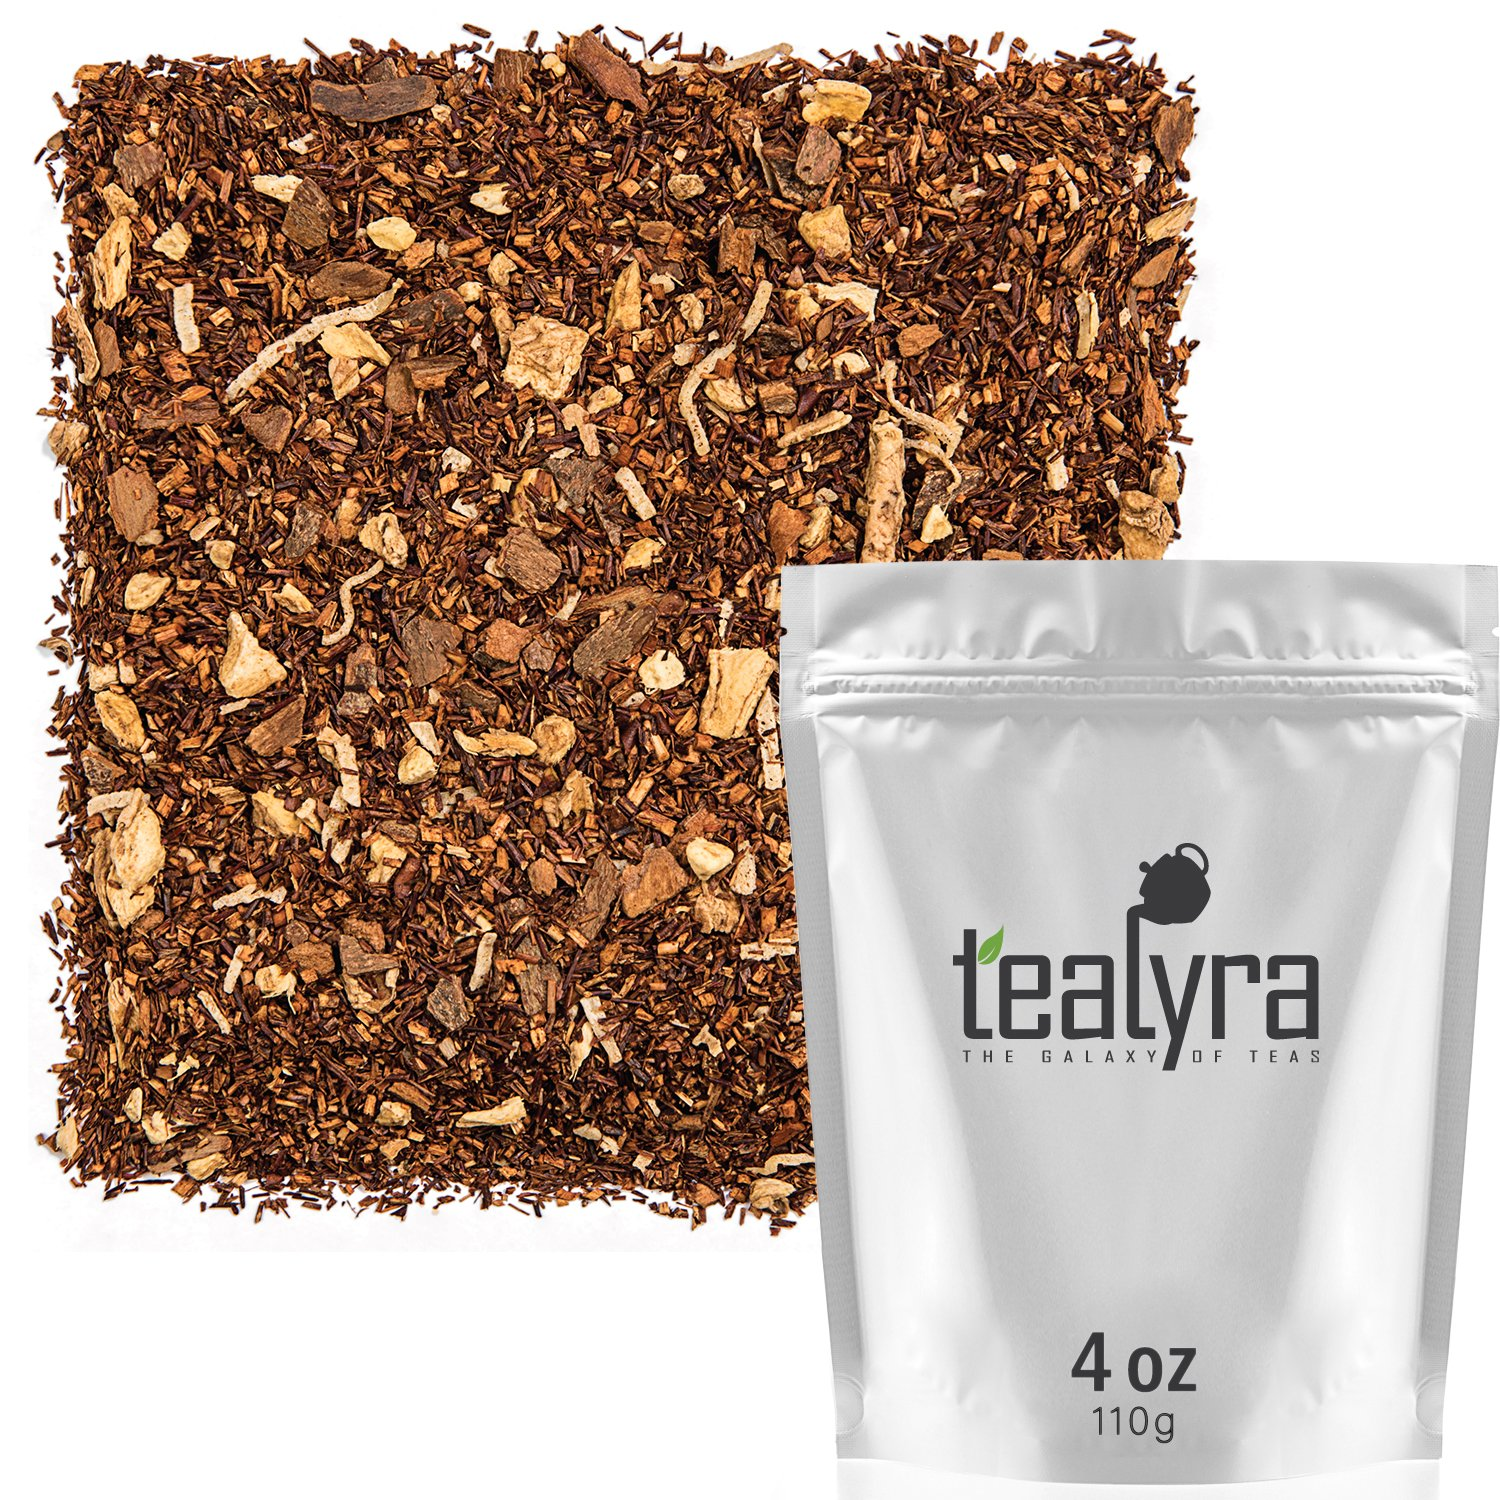 Tealyra - Rooibos Coconut Vanilla Chai - Ginger and Cinnamon with Red Bush Rooibos Herbal Loose Leaf Tea - Antioxidants Rich - Caffeine-Free - 110g (4-ounce) by Tealyra